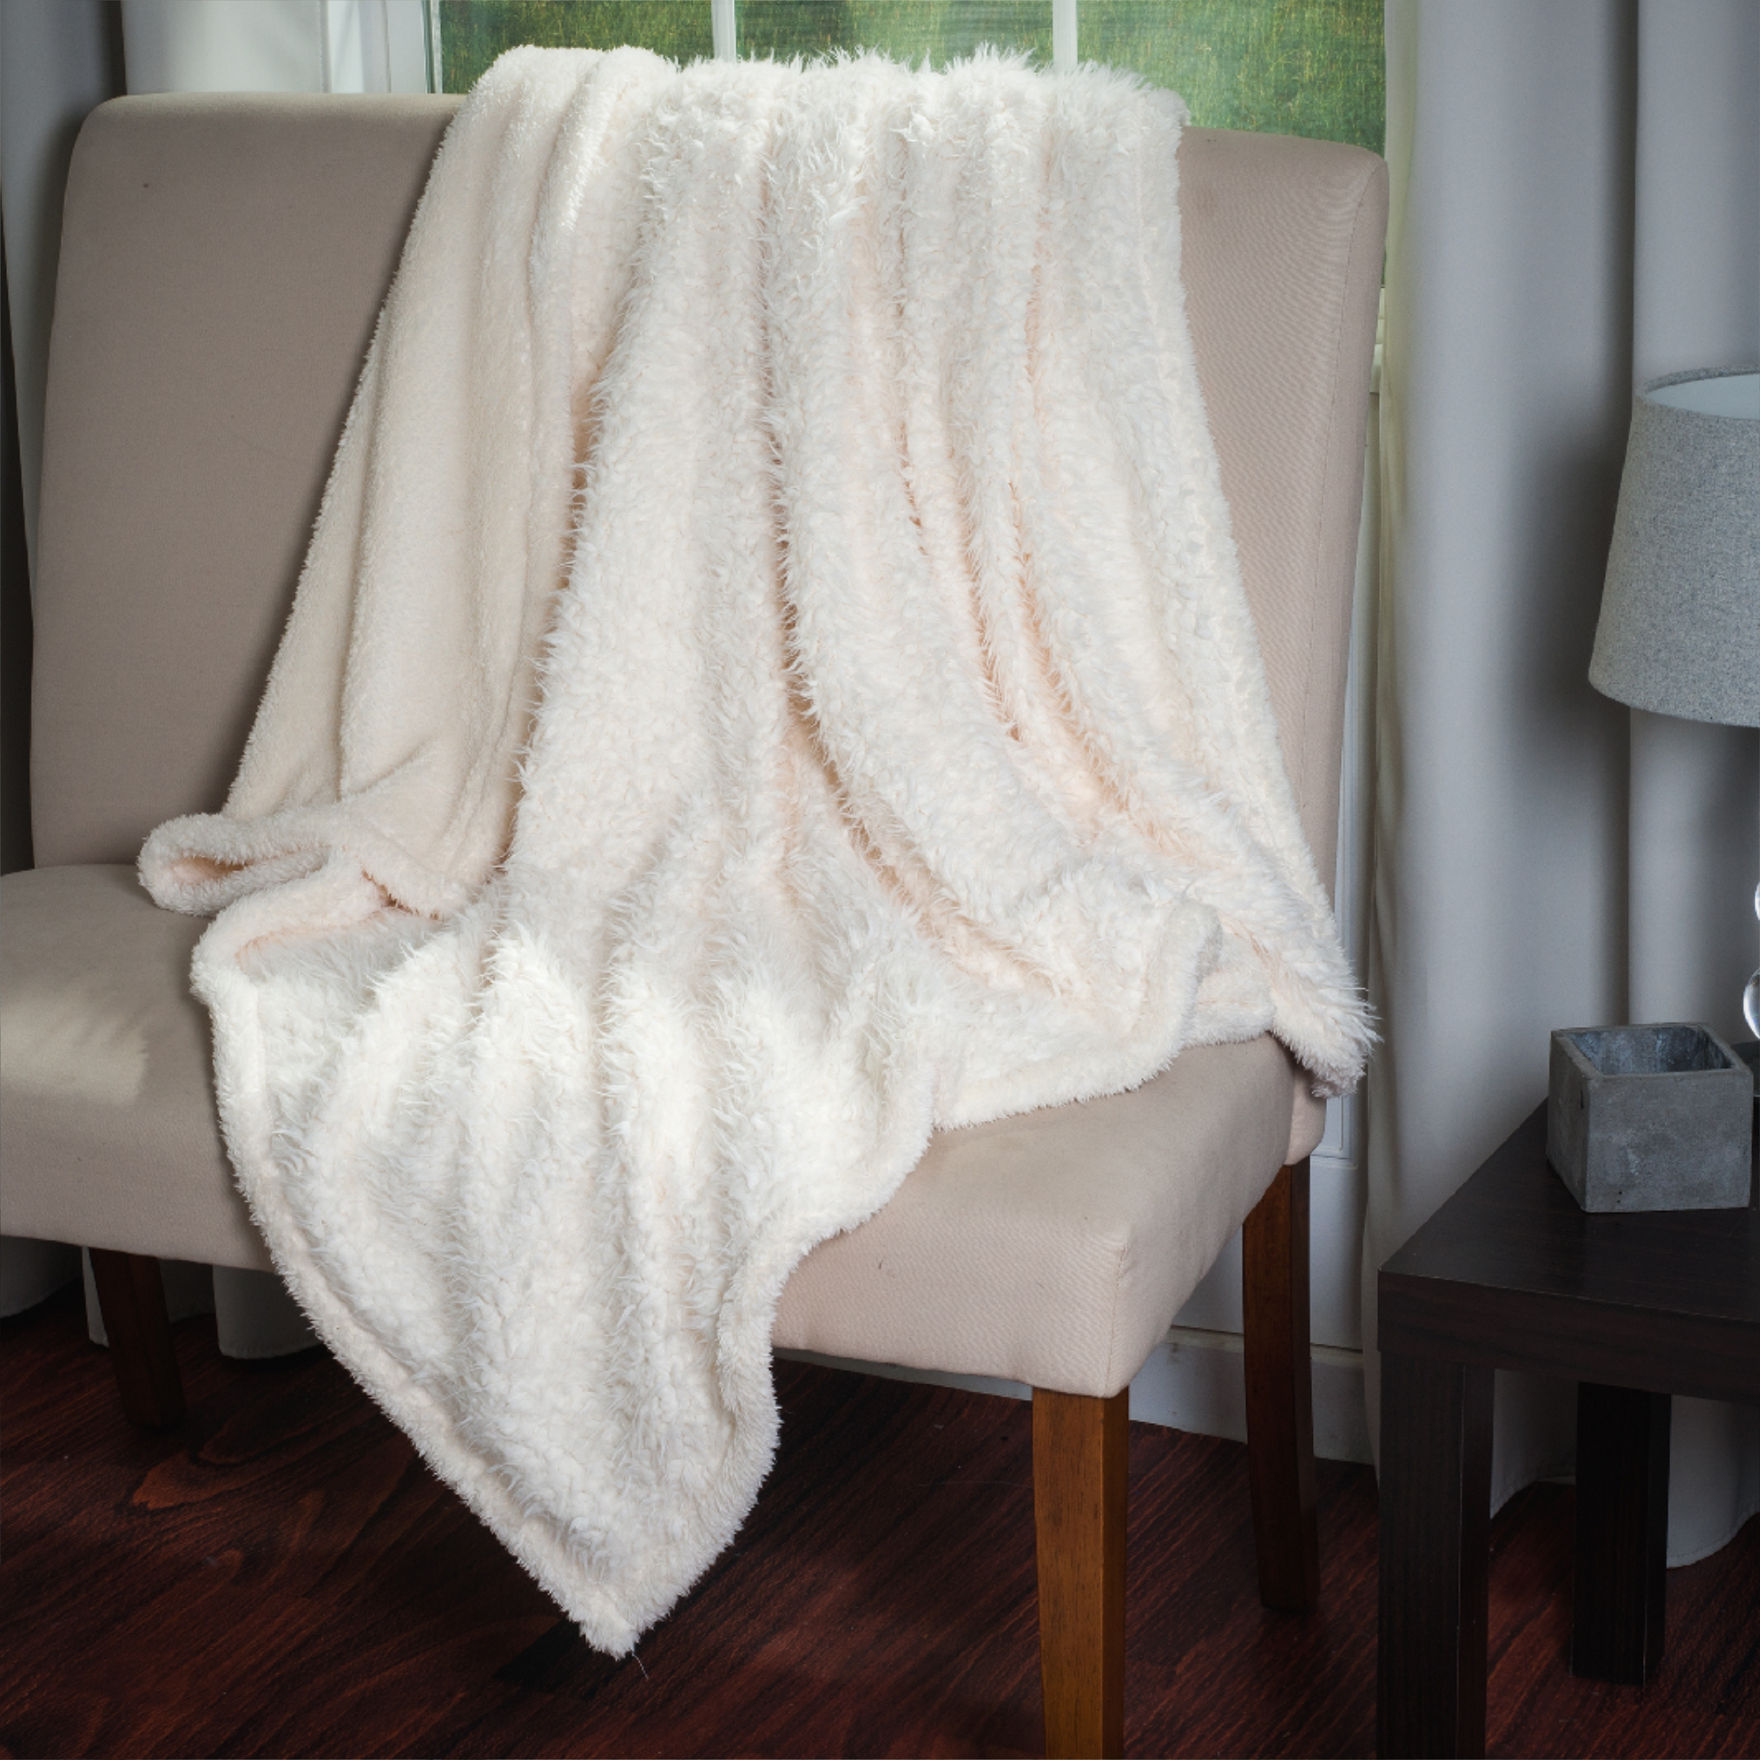 Lavish Home White Blankets & Throws